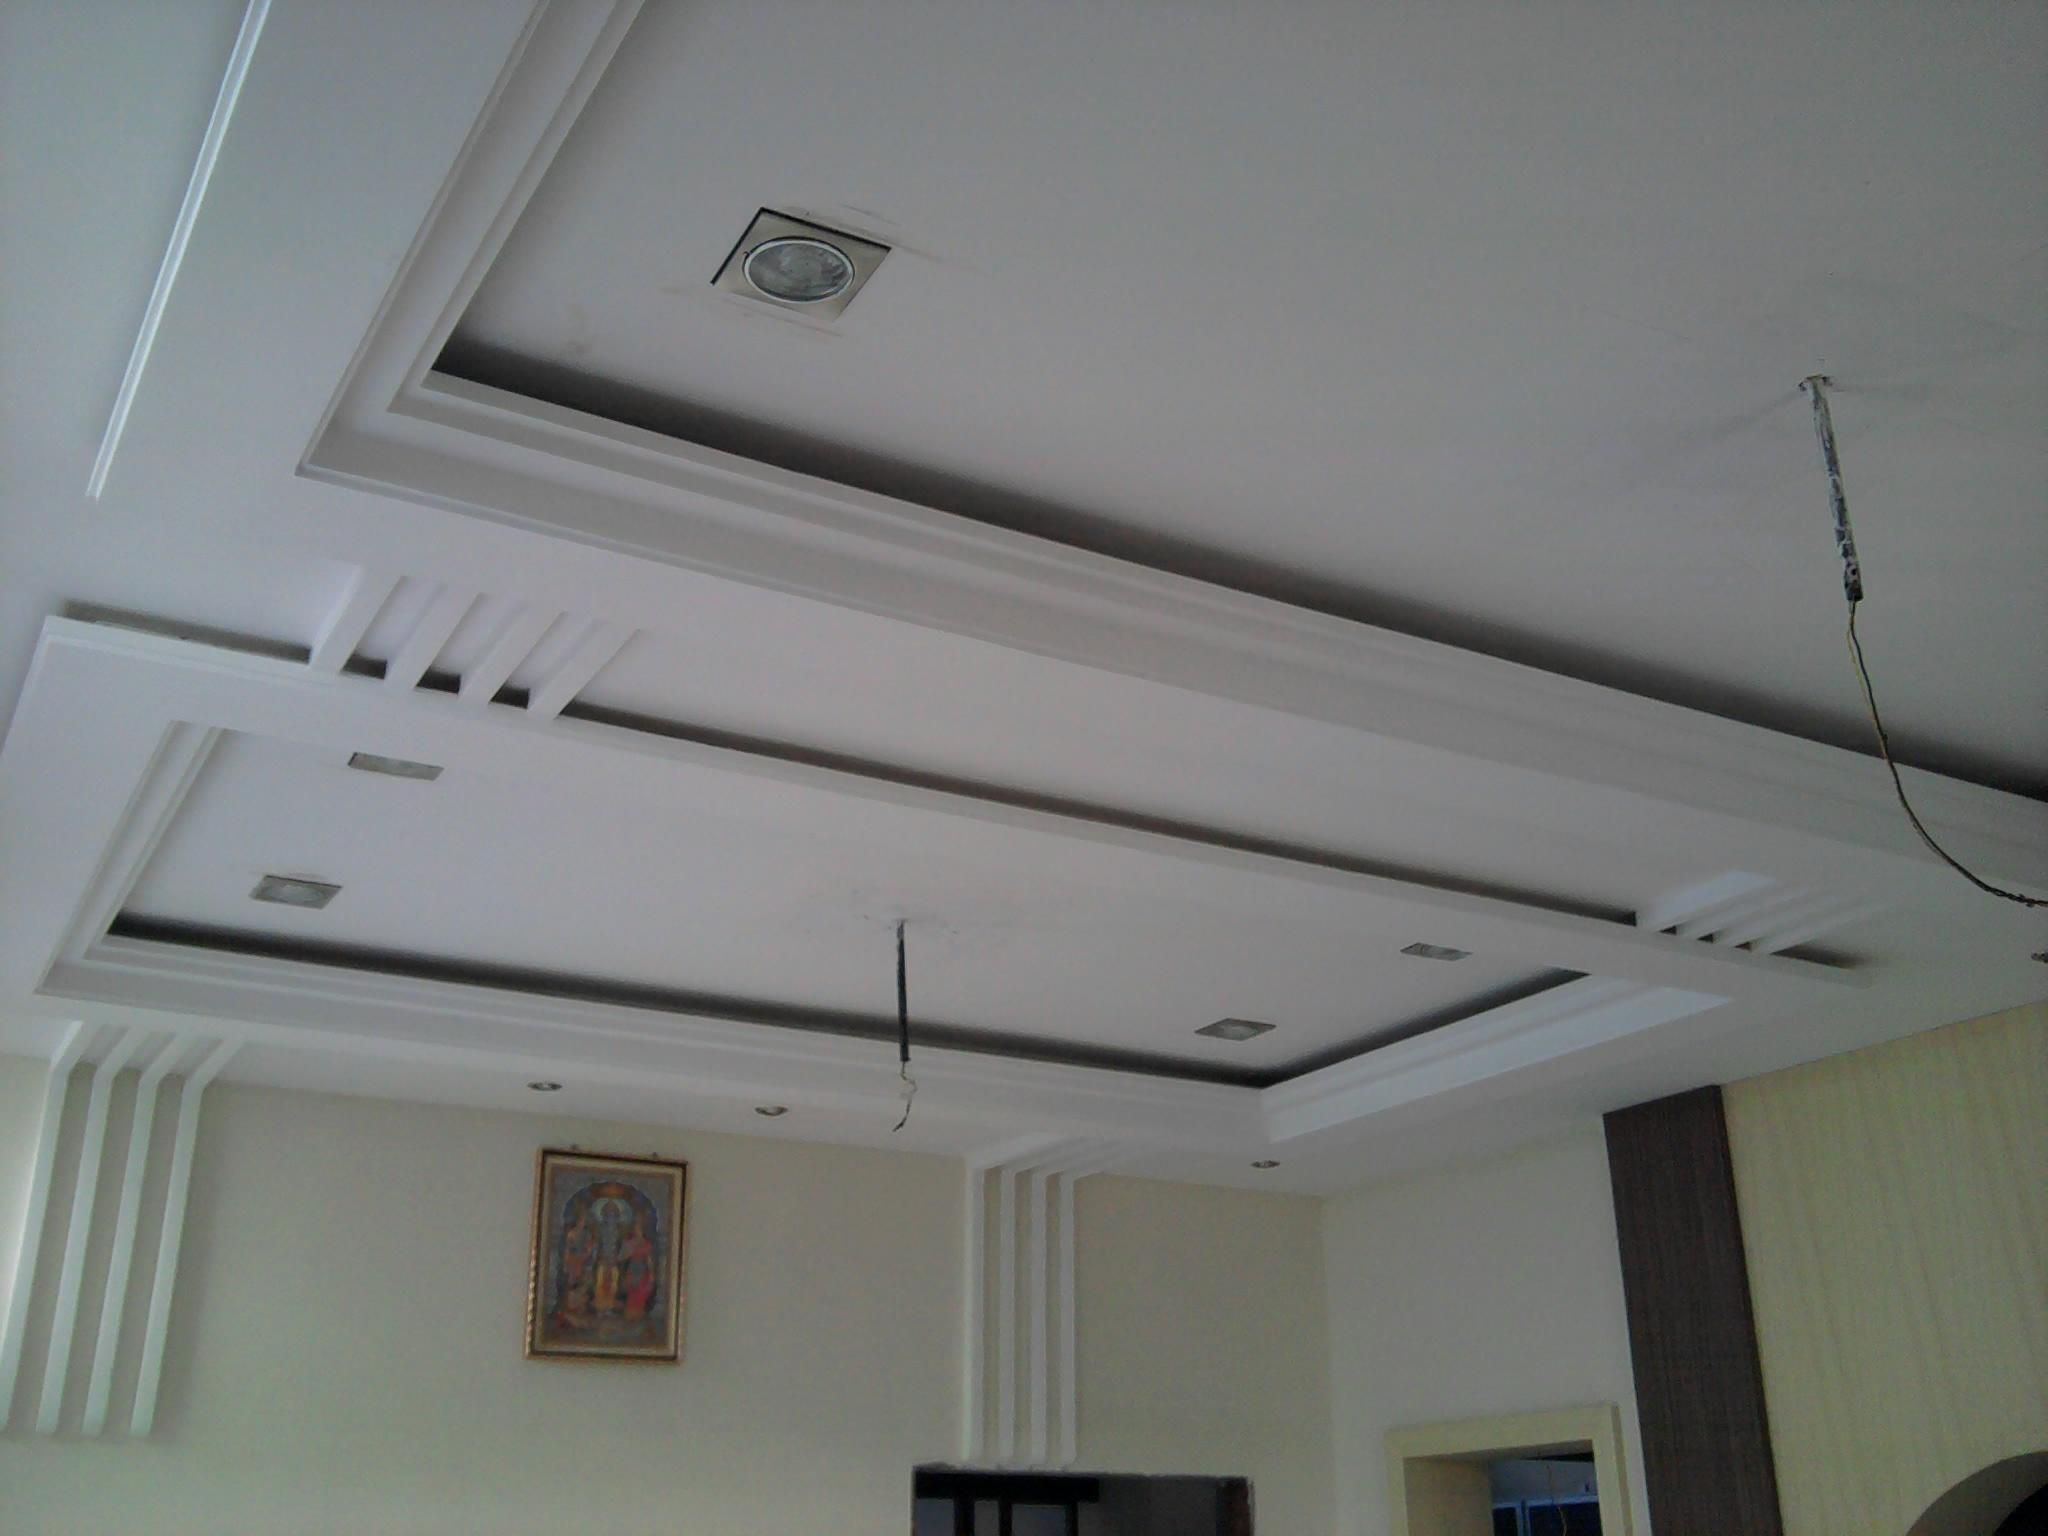 Kitchen Design Ceiling Design For Hall 1021201044533 Latest Ceiling ...